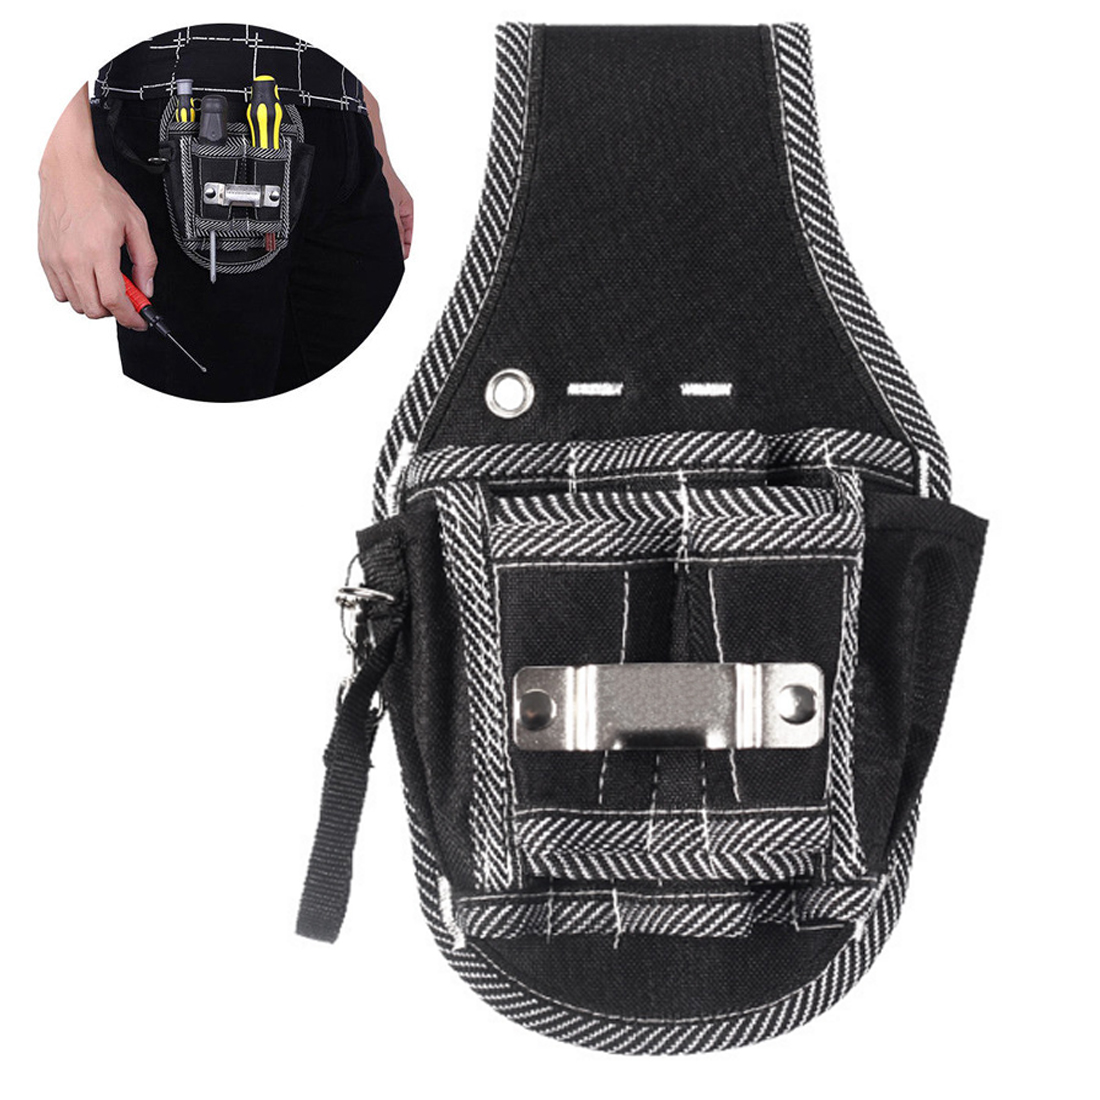 Electric Drill Pocket Tool Bag With Belt 9 In 1 Screwdriver Utility Kit Holder 600D Nylon Fabric Tool Bag Electrician Kit